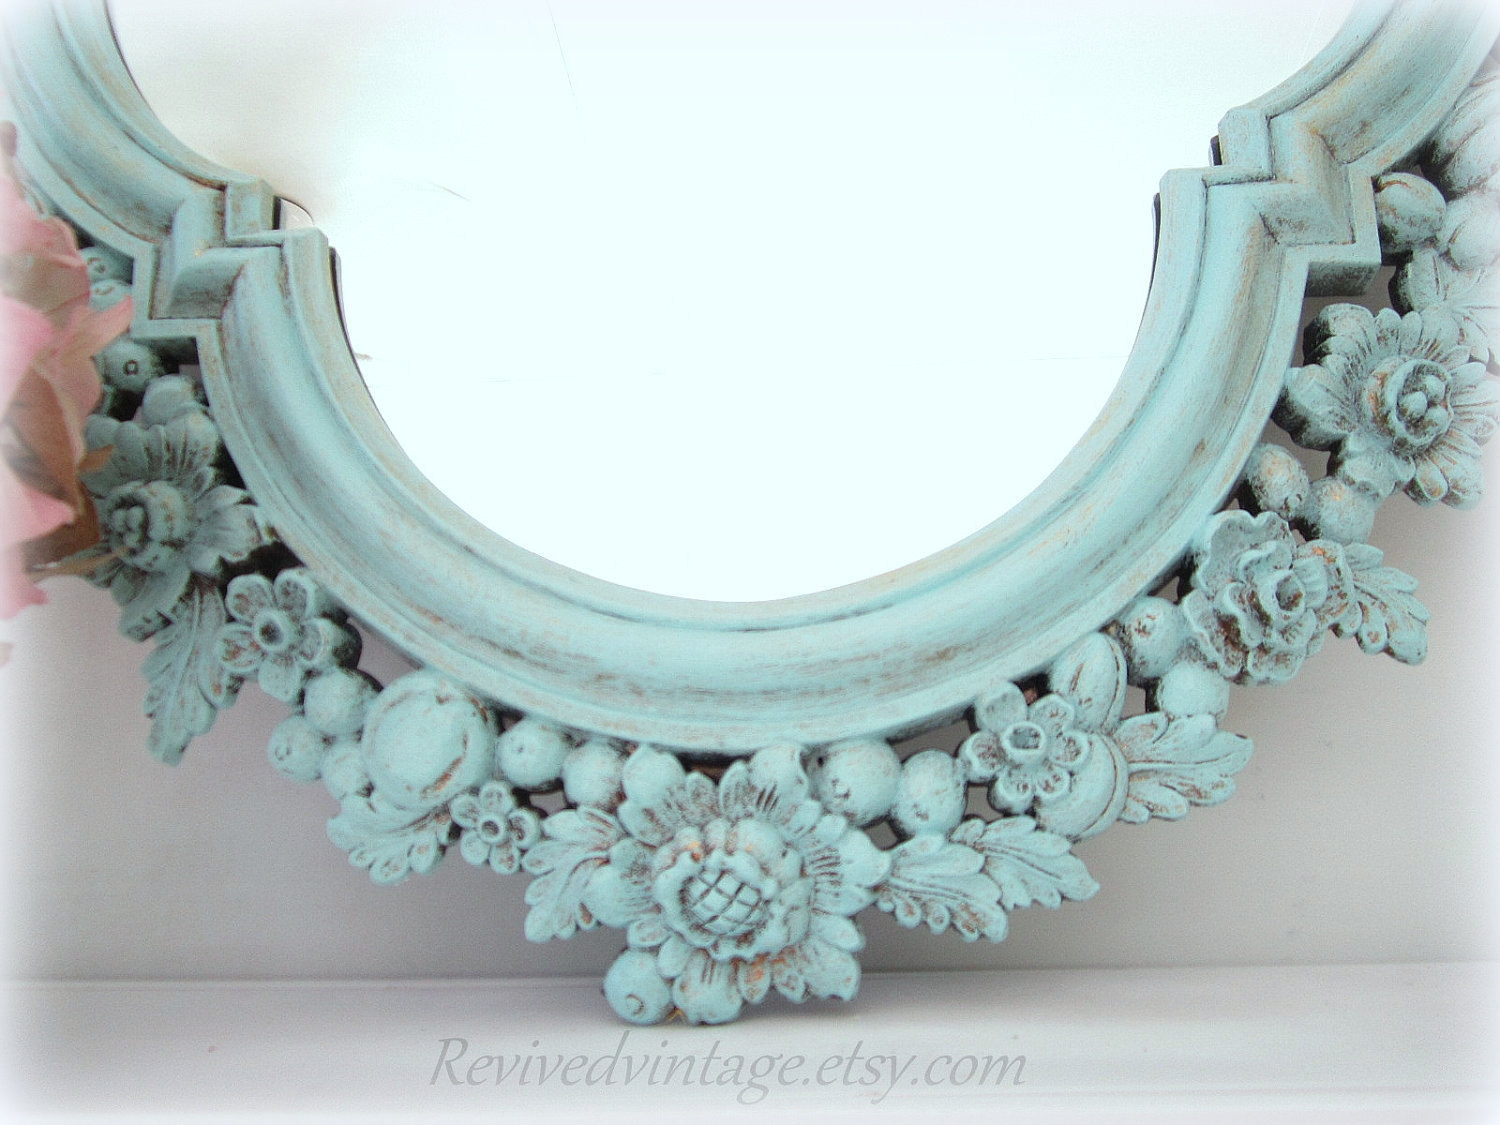 Decorative Vintage Mirrors For Sale Large Mirror Shab Chic With Regard To Large Antique Mirrors For Sale (Image 6 of 15)